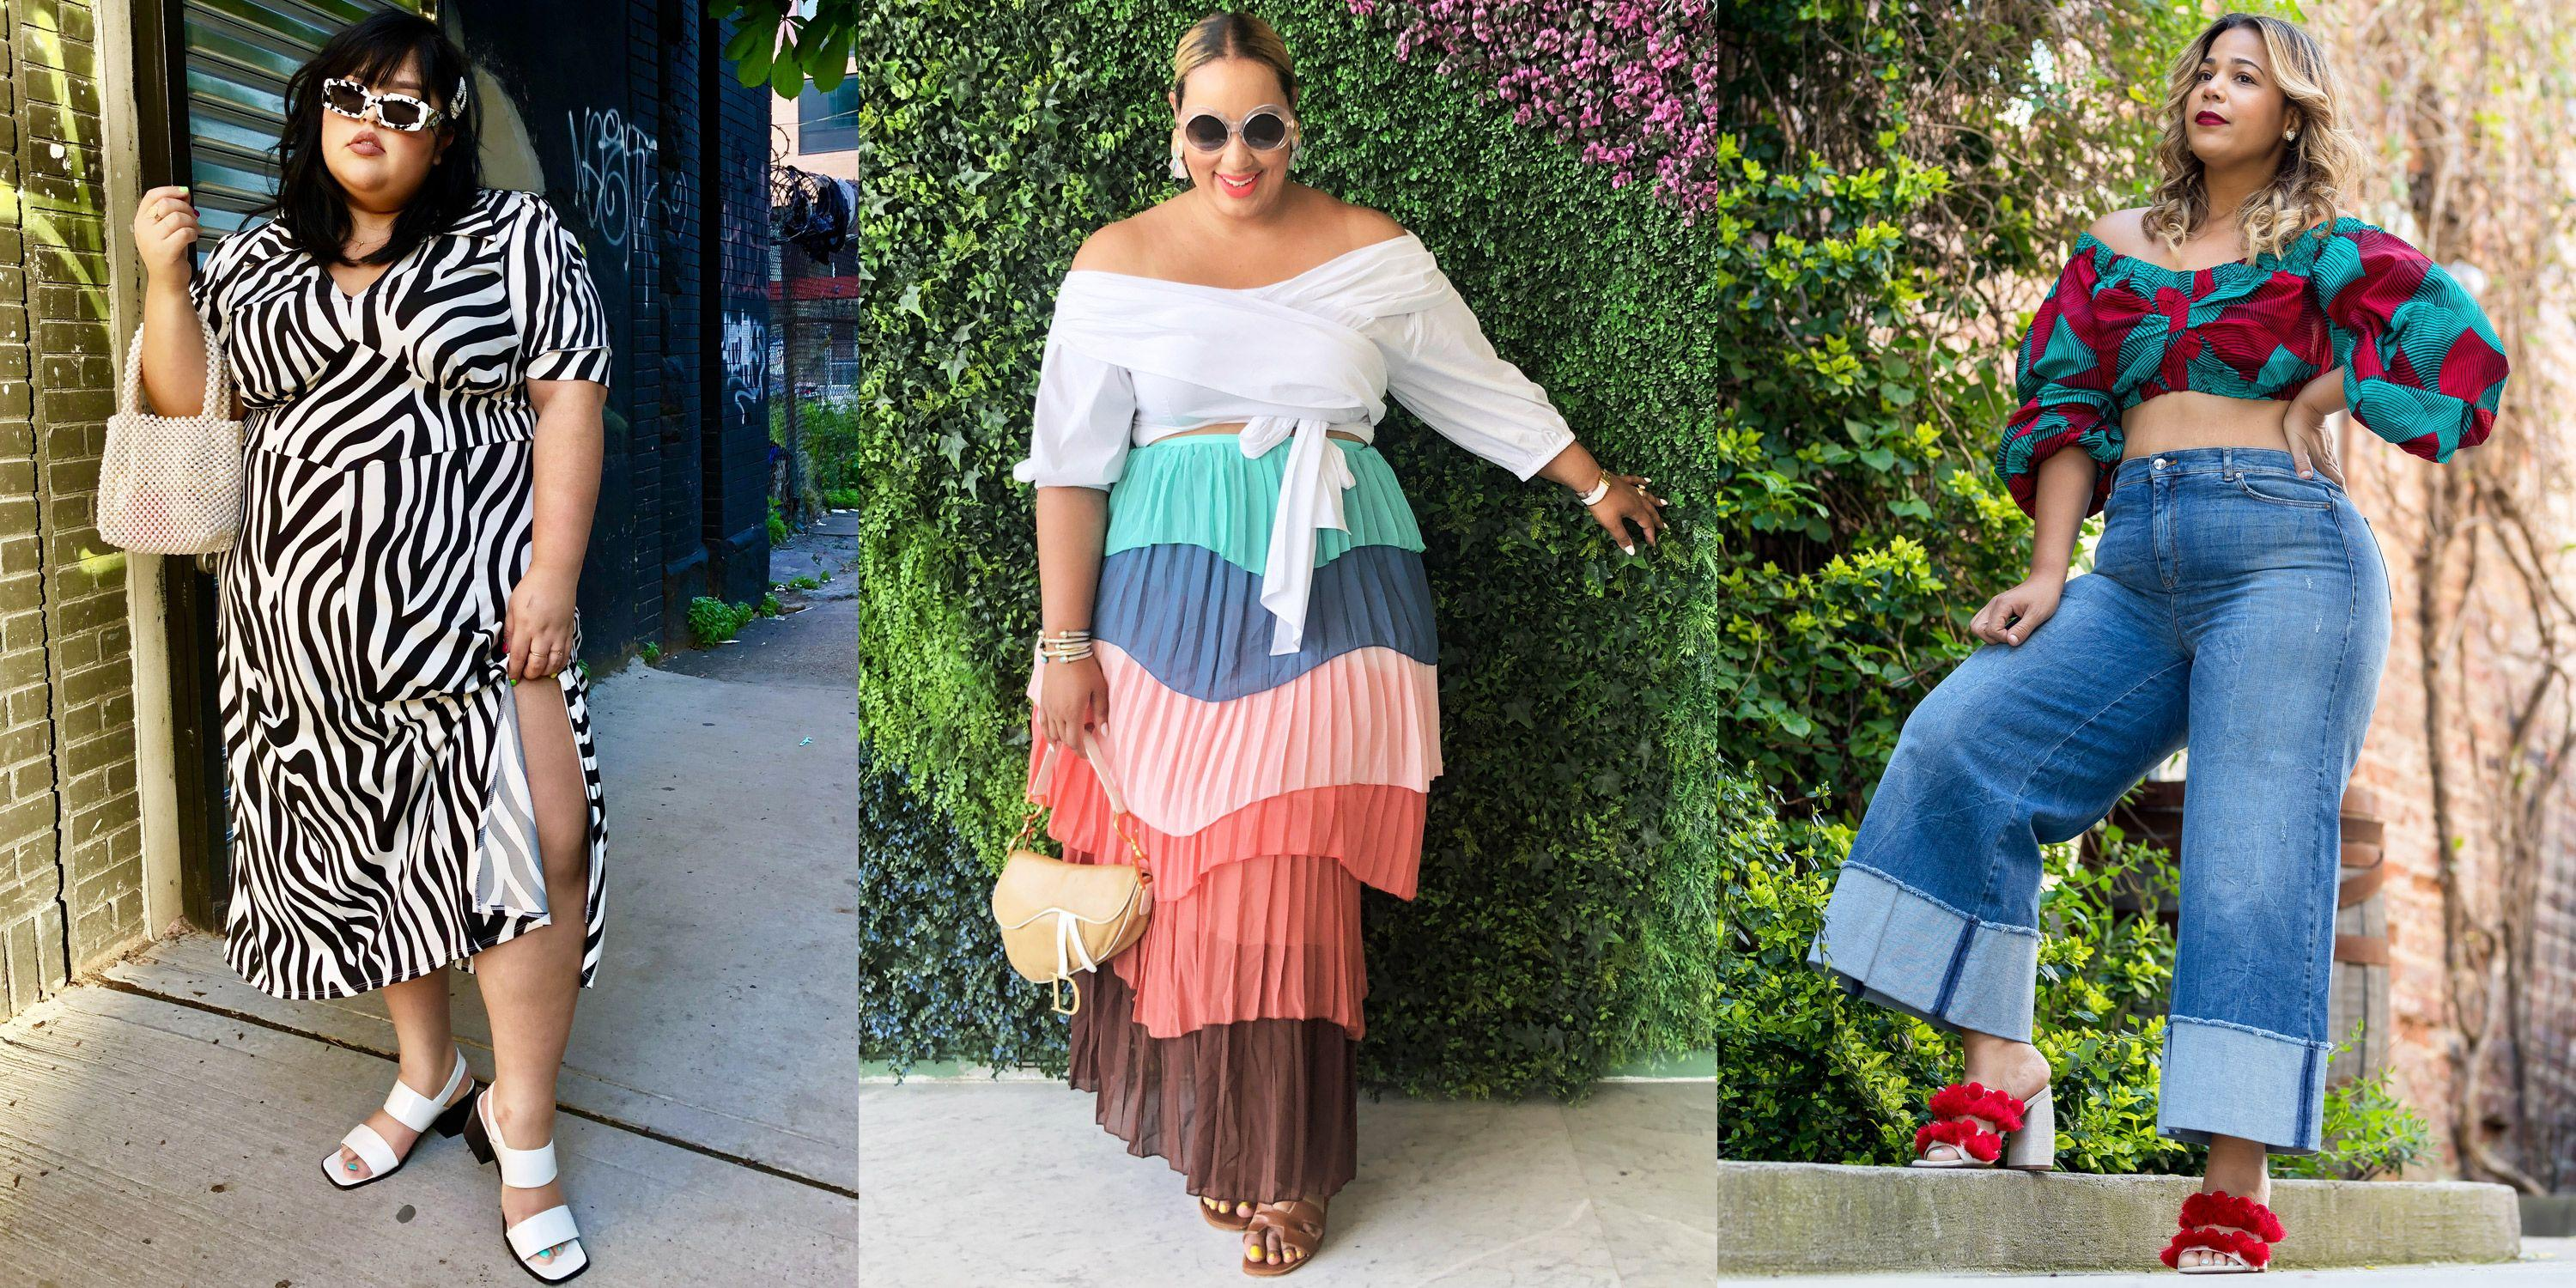 616b240bca Chic Summer Outfit Ideas to Highlight Your Curves